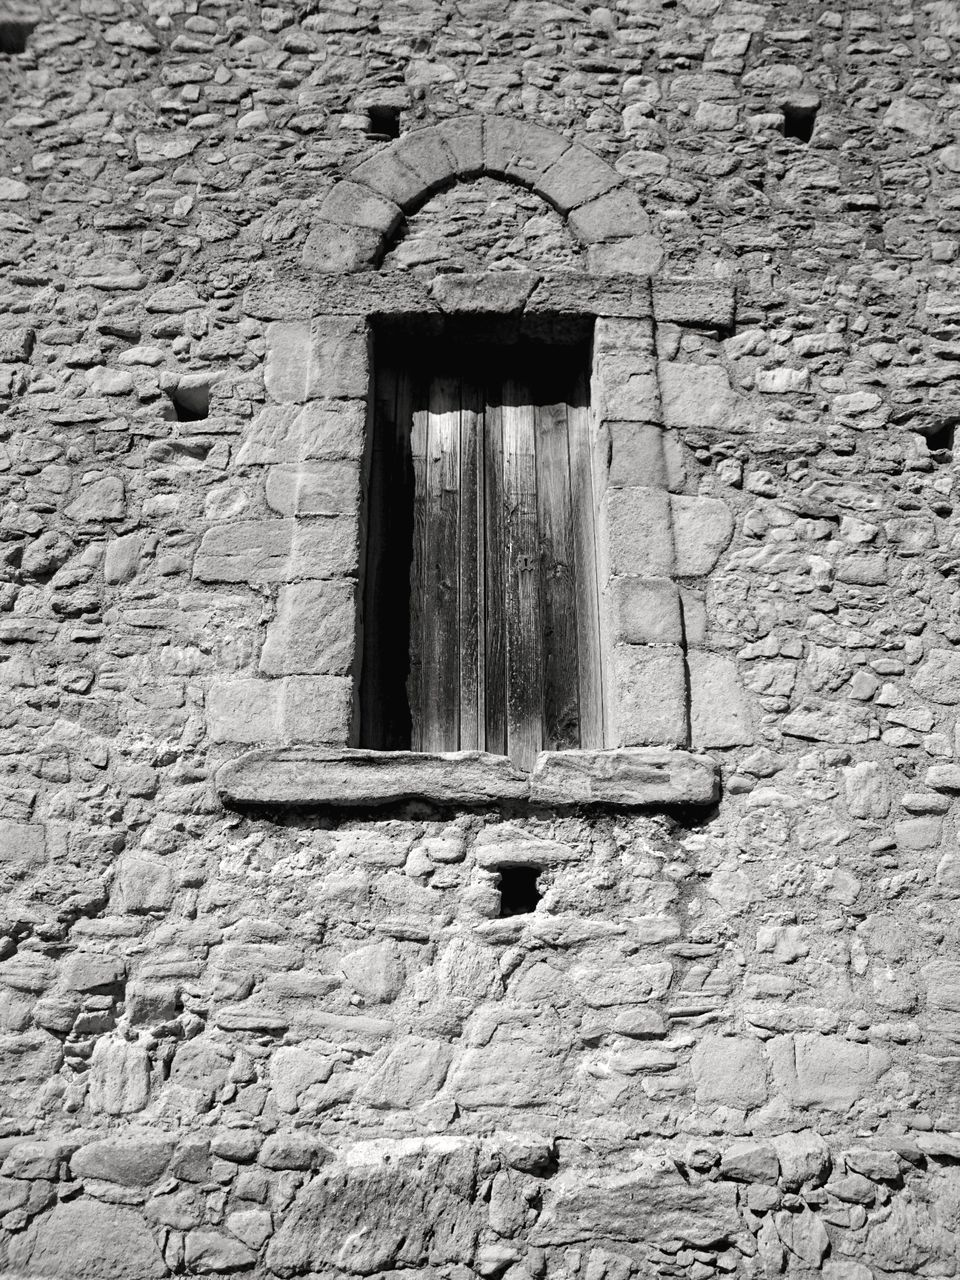 LOW ANGLE VIEW OF WINDOW ON OLD WALL OF BUILDING